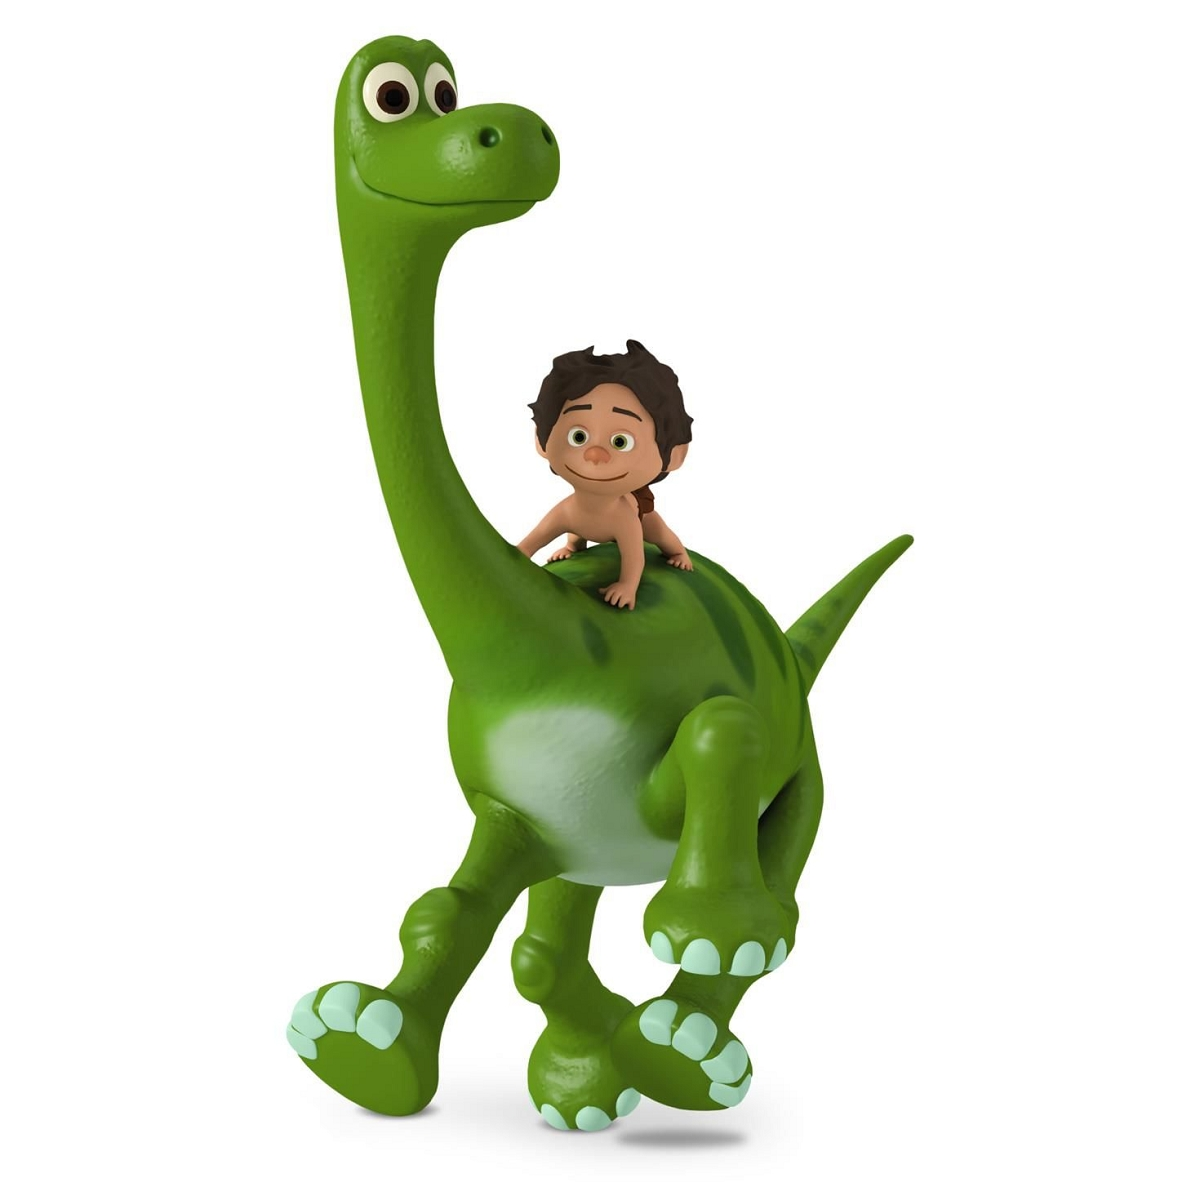 2016 arlo and spot the good dinosaur hallmark keepsake ornament hooked on hallmark ornaments. Black Bedroom Furniture Sets. Home Design Ideas